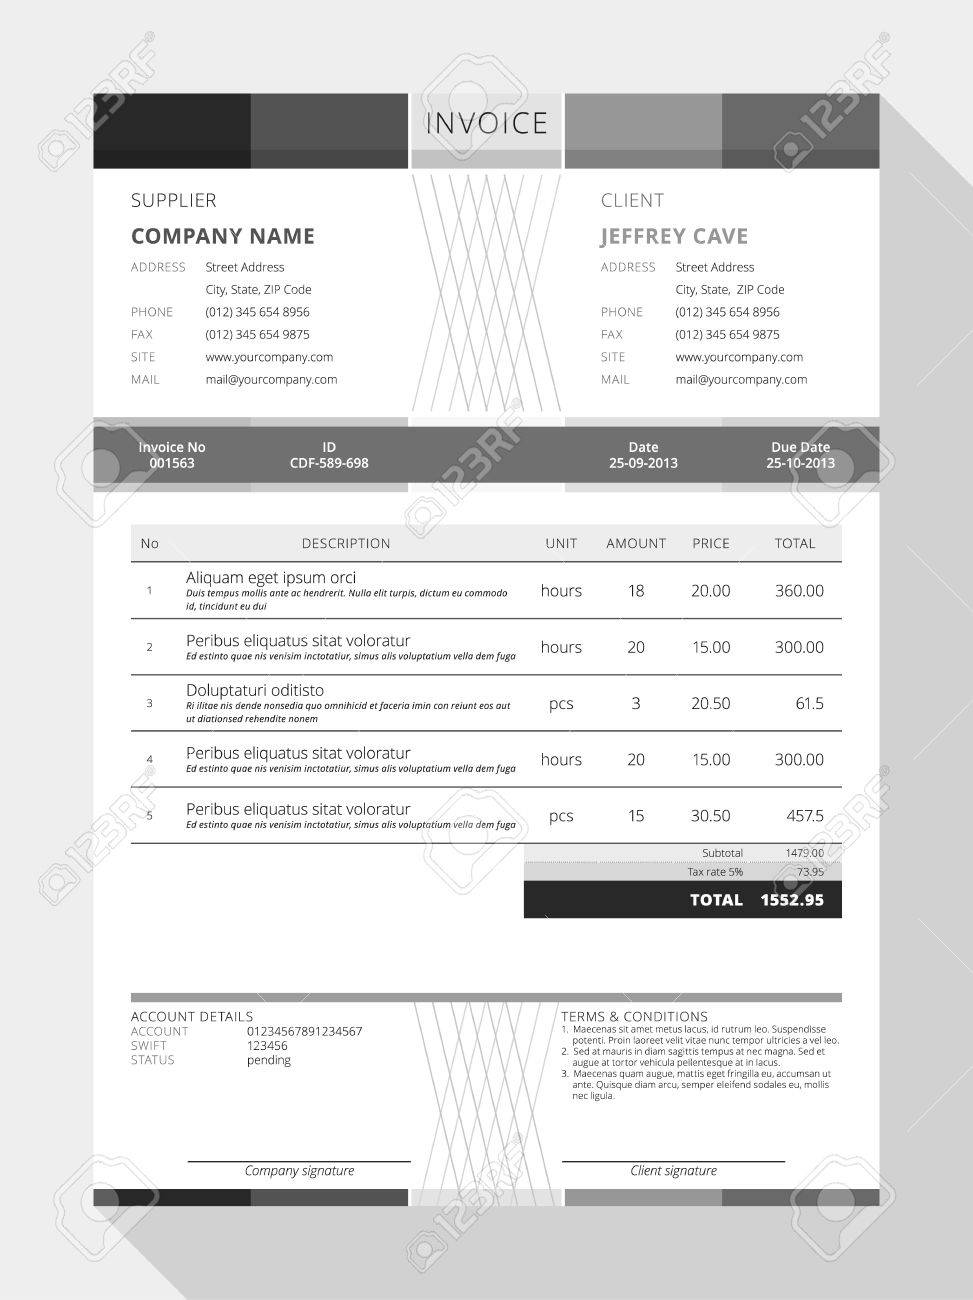 Usdgus  Unusual Design An Invoice  Professional Graphic Design Invoice  With Gorgeous Vector Customizable Invoice Form Template Design Vector   Design An Invoice With Alluring Purchase Return Invoice Format Also Handyman Invoice In Addition Paypal Invoice Logo And How To Create An Invoice In Quickbooks As Well As What Is An Invoice Price On A New Car Additionally Outstanding Invoice Definition From Happytomco With Usdgus  Gorgeous Design An Invoice  Professional Graphic Design Invoice  With Alluring Vector Customizable Invoice Form Template Design Vector   Design An Invoice And Unusual Purchase Return Invoice Format Also Handyman Invoice In Addition Paypal Invoice Logo From Happytomco